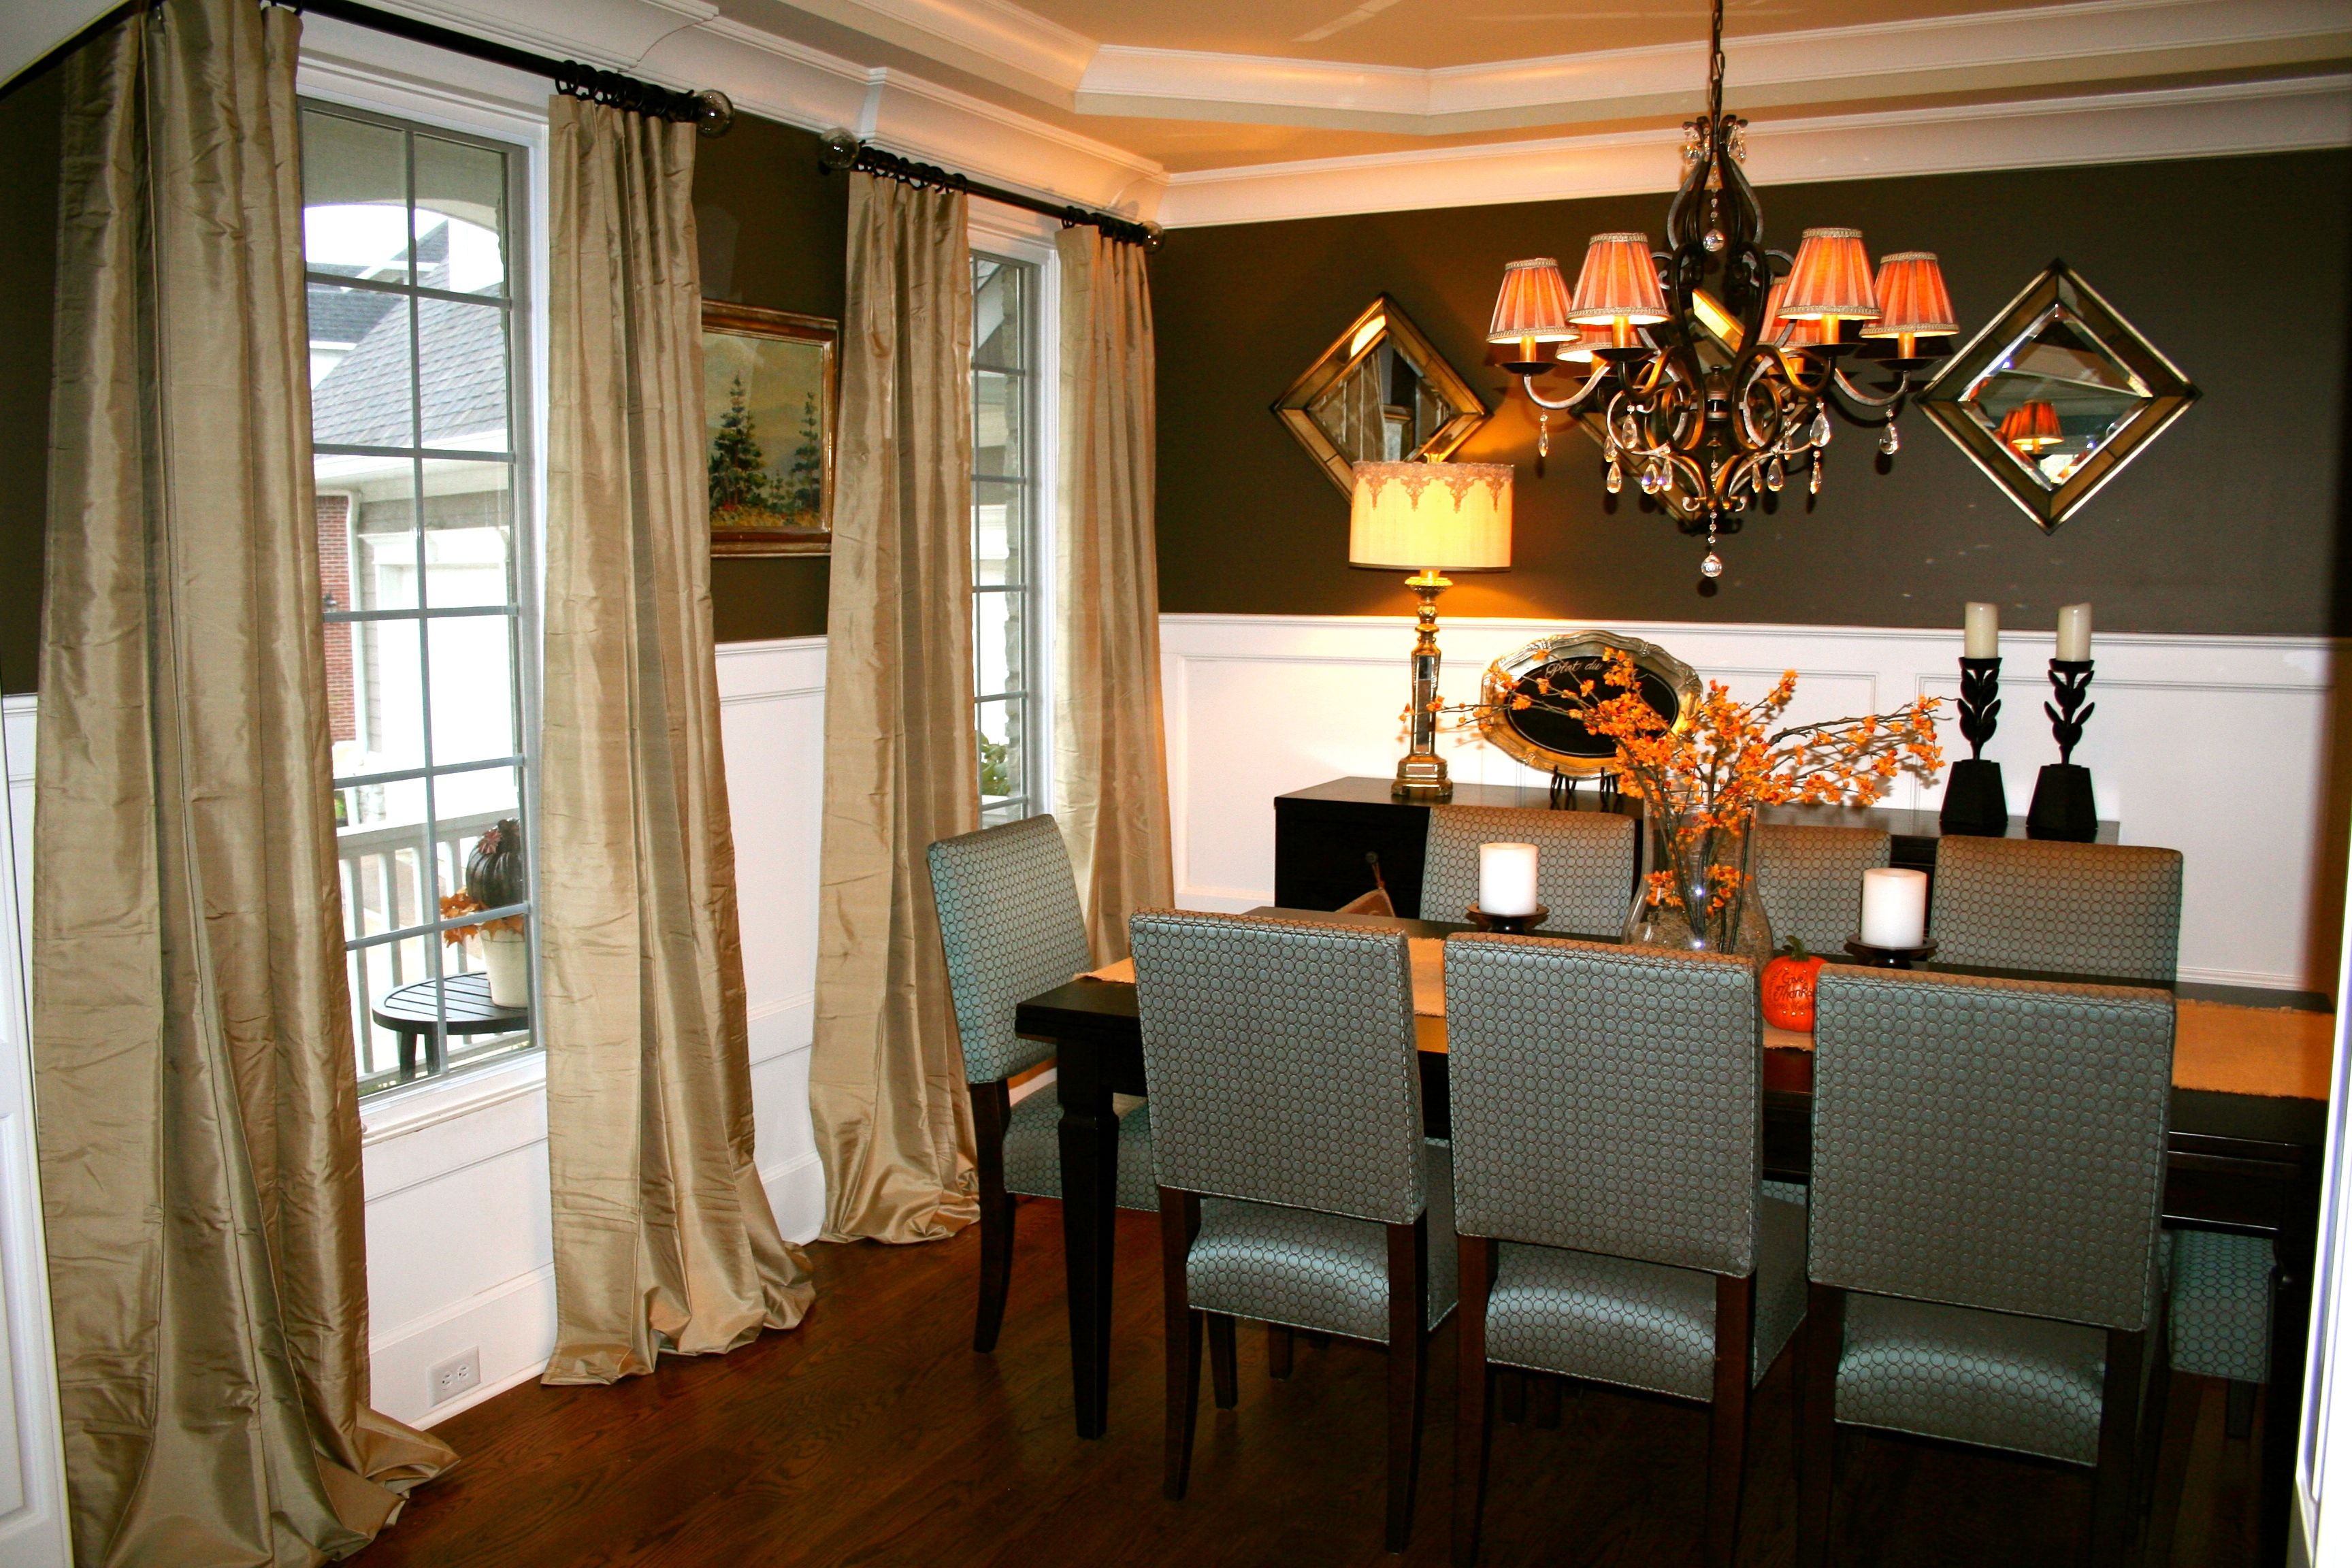 Silk Drapery Panels Puddle For A Formal Look In This Transitional Dining Room